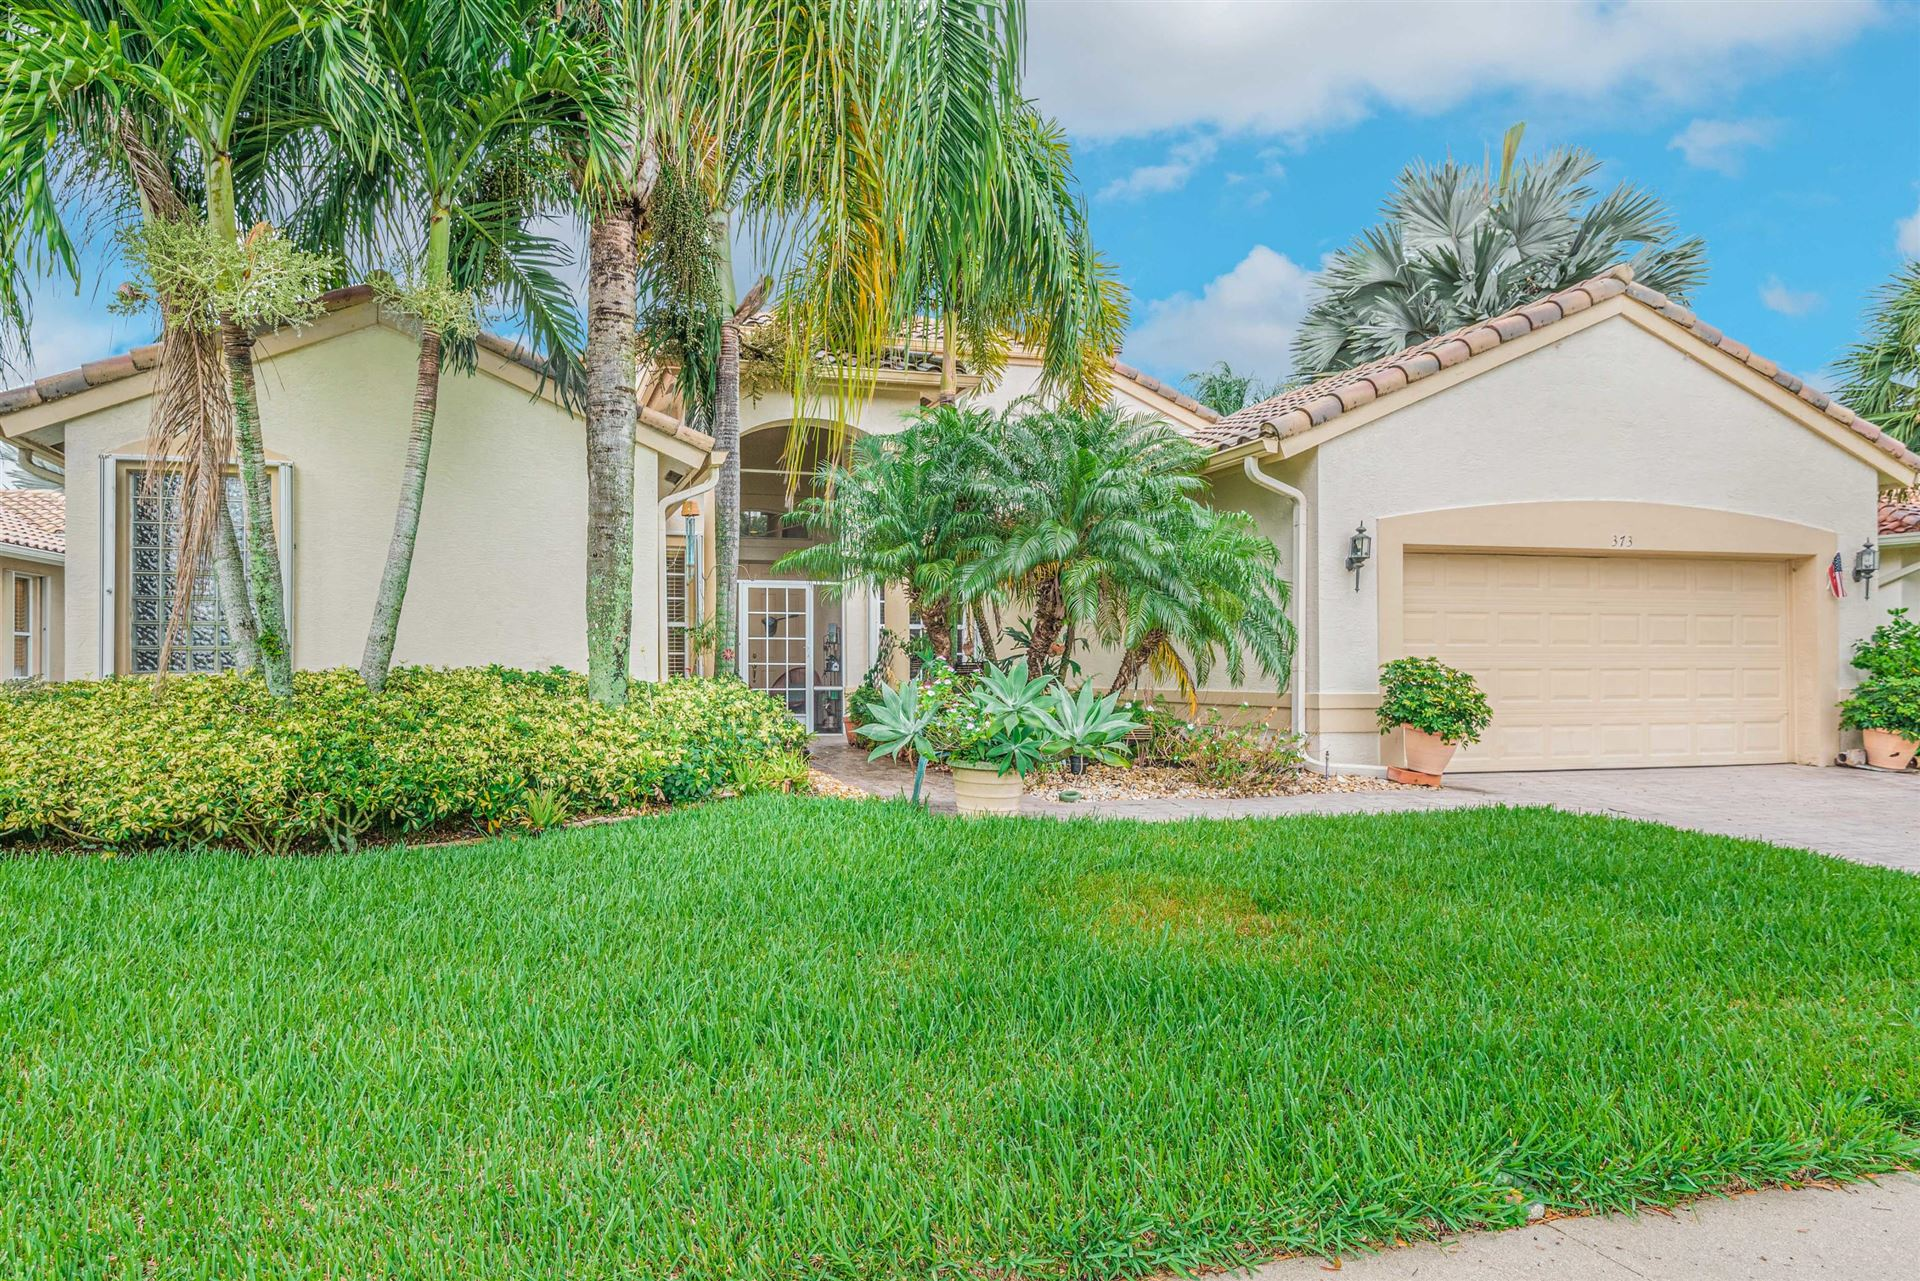 373 NW Shoreview Drive, Port Saint Lucie, FL 34986 - #: RX-10632104